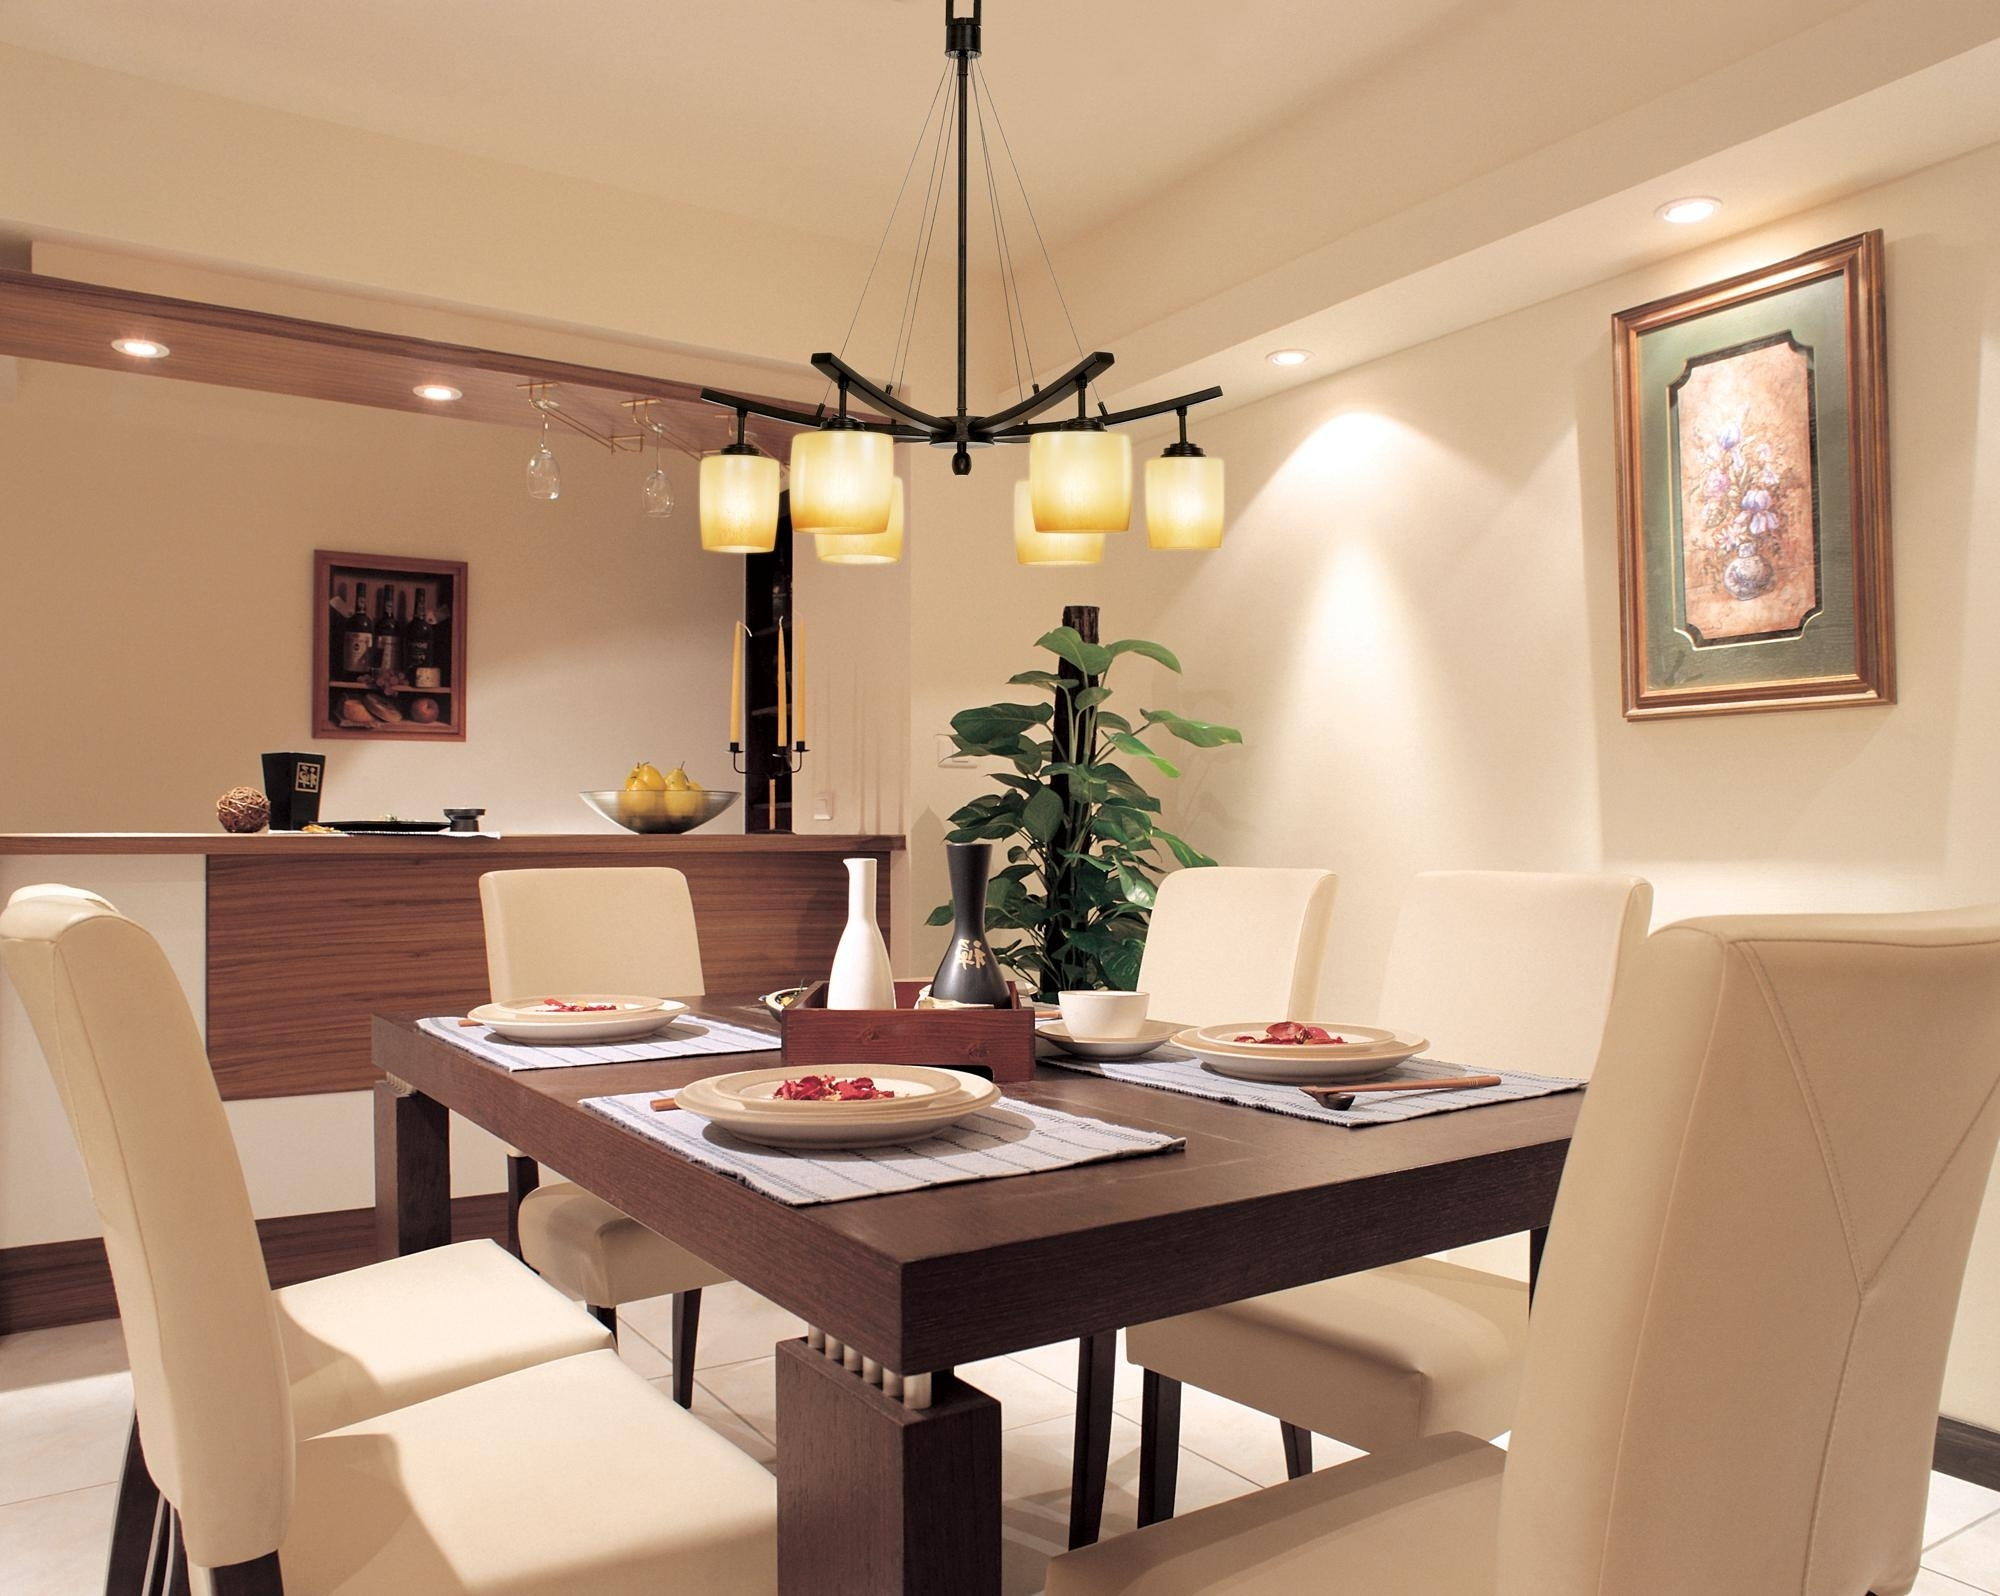 Most Popular Lighting For Dining Tables With Regard To Dining Room Living Room And Dining Room Lighting Dining Table (View 17 of 25)